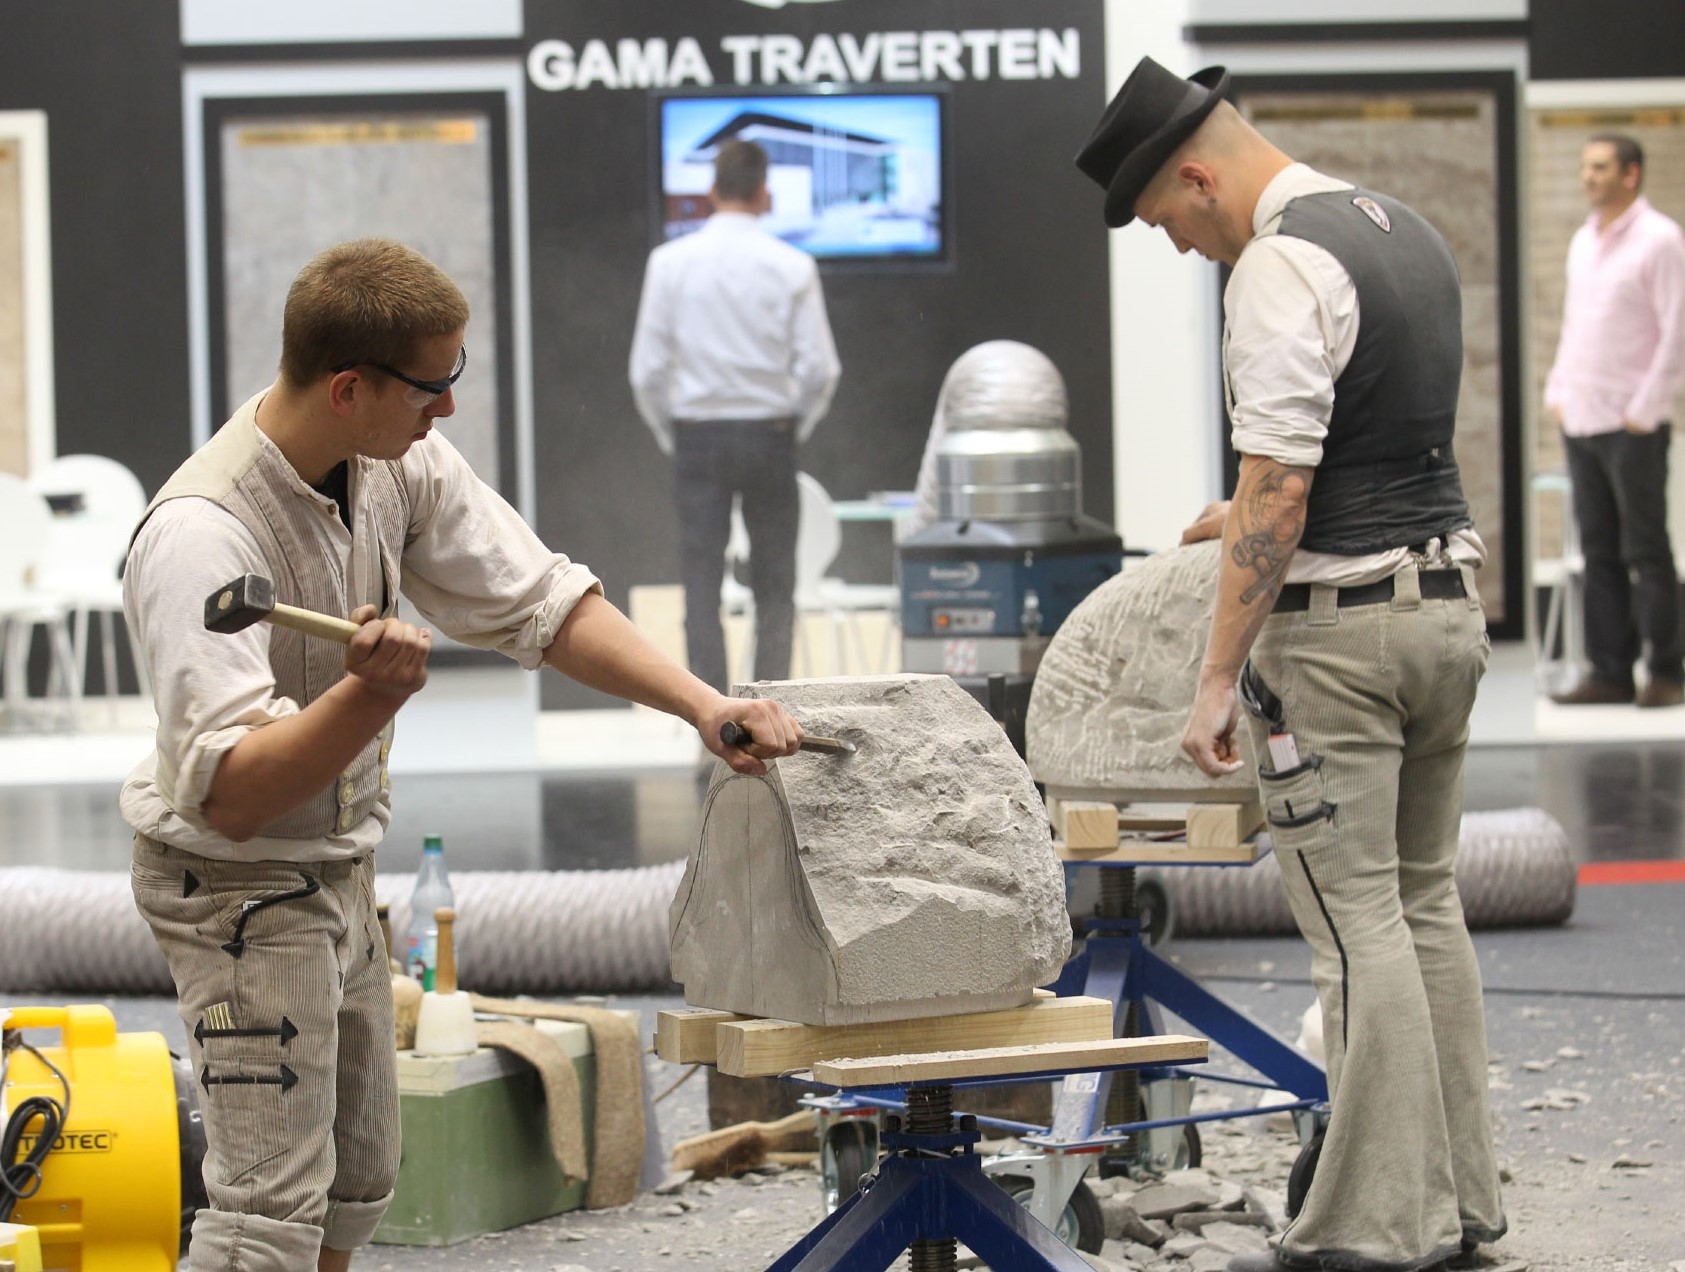 stone-tec-nuernberg-2020-natural-stone-exhibition-preparations-june